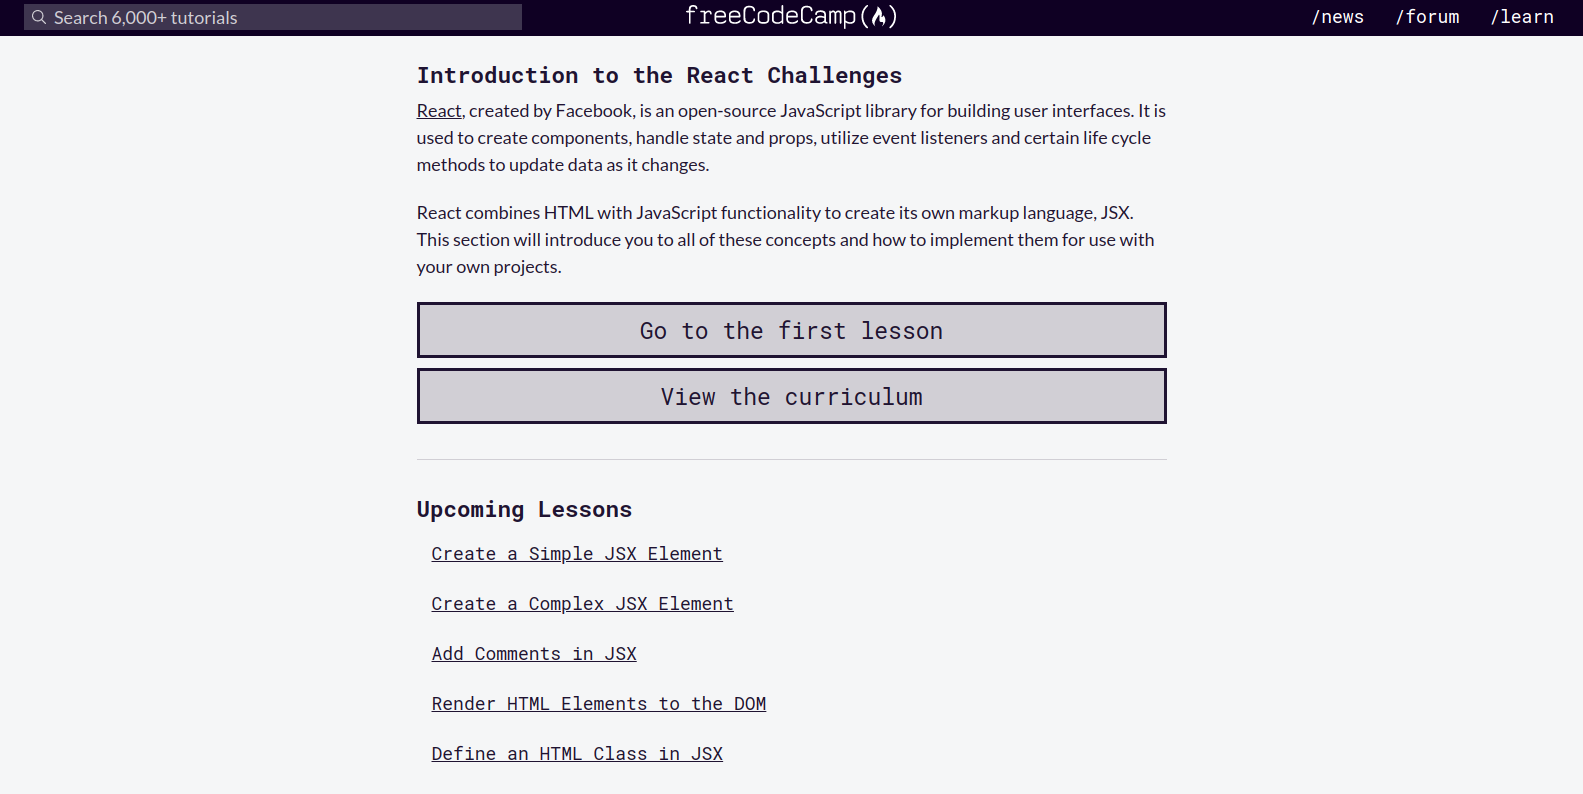 FreeCodeCamp React Challenges